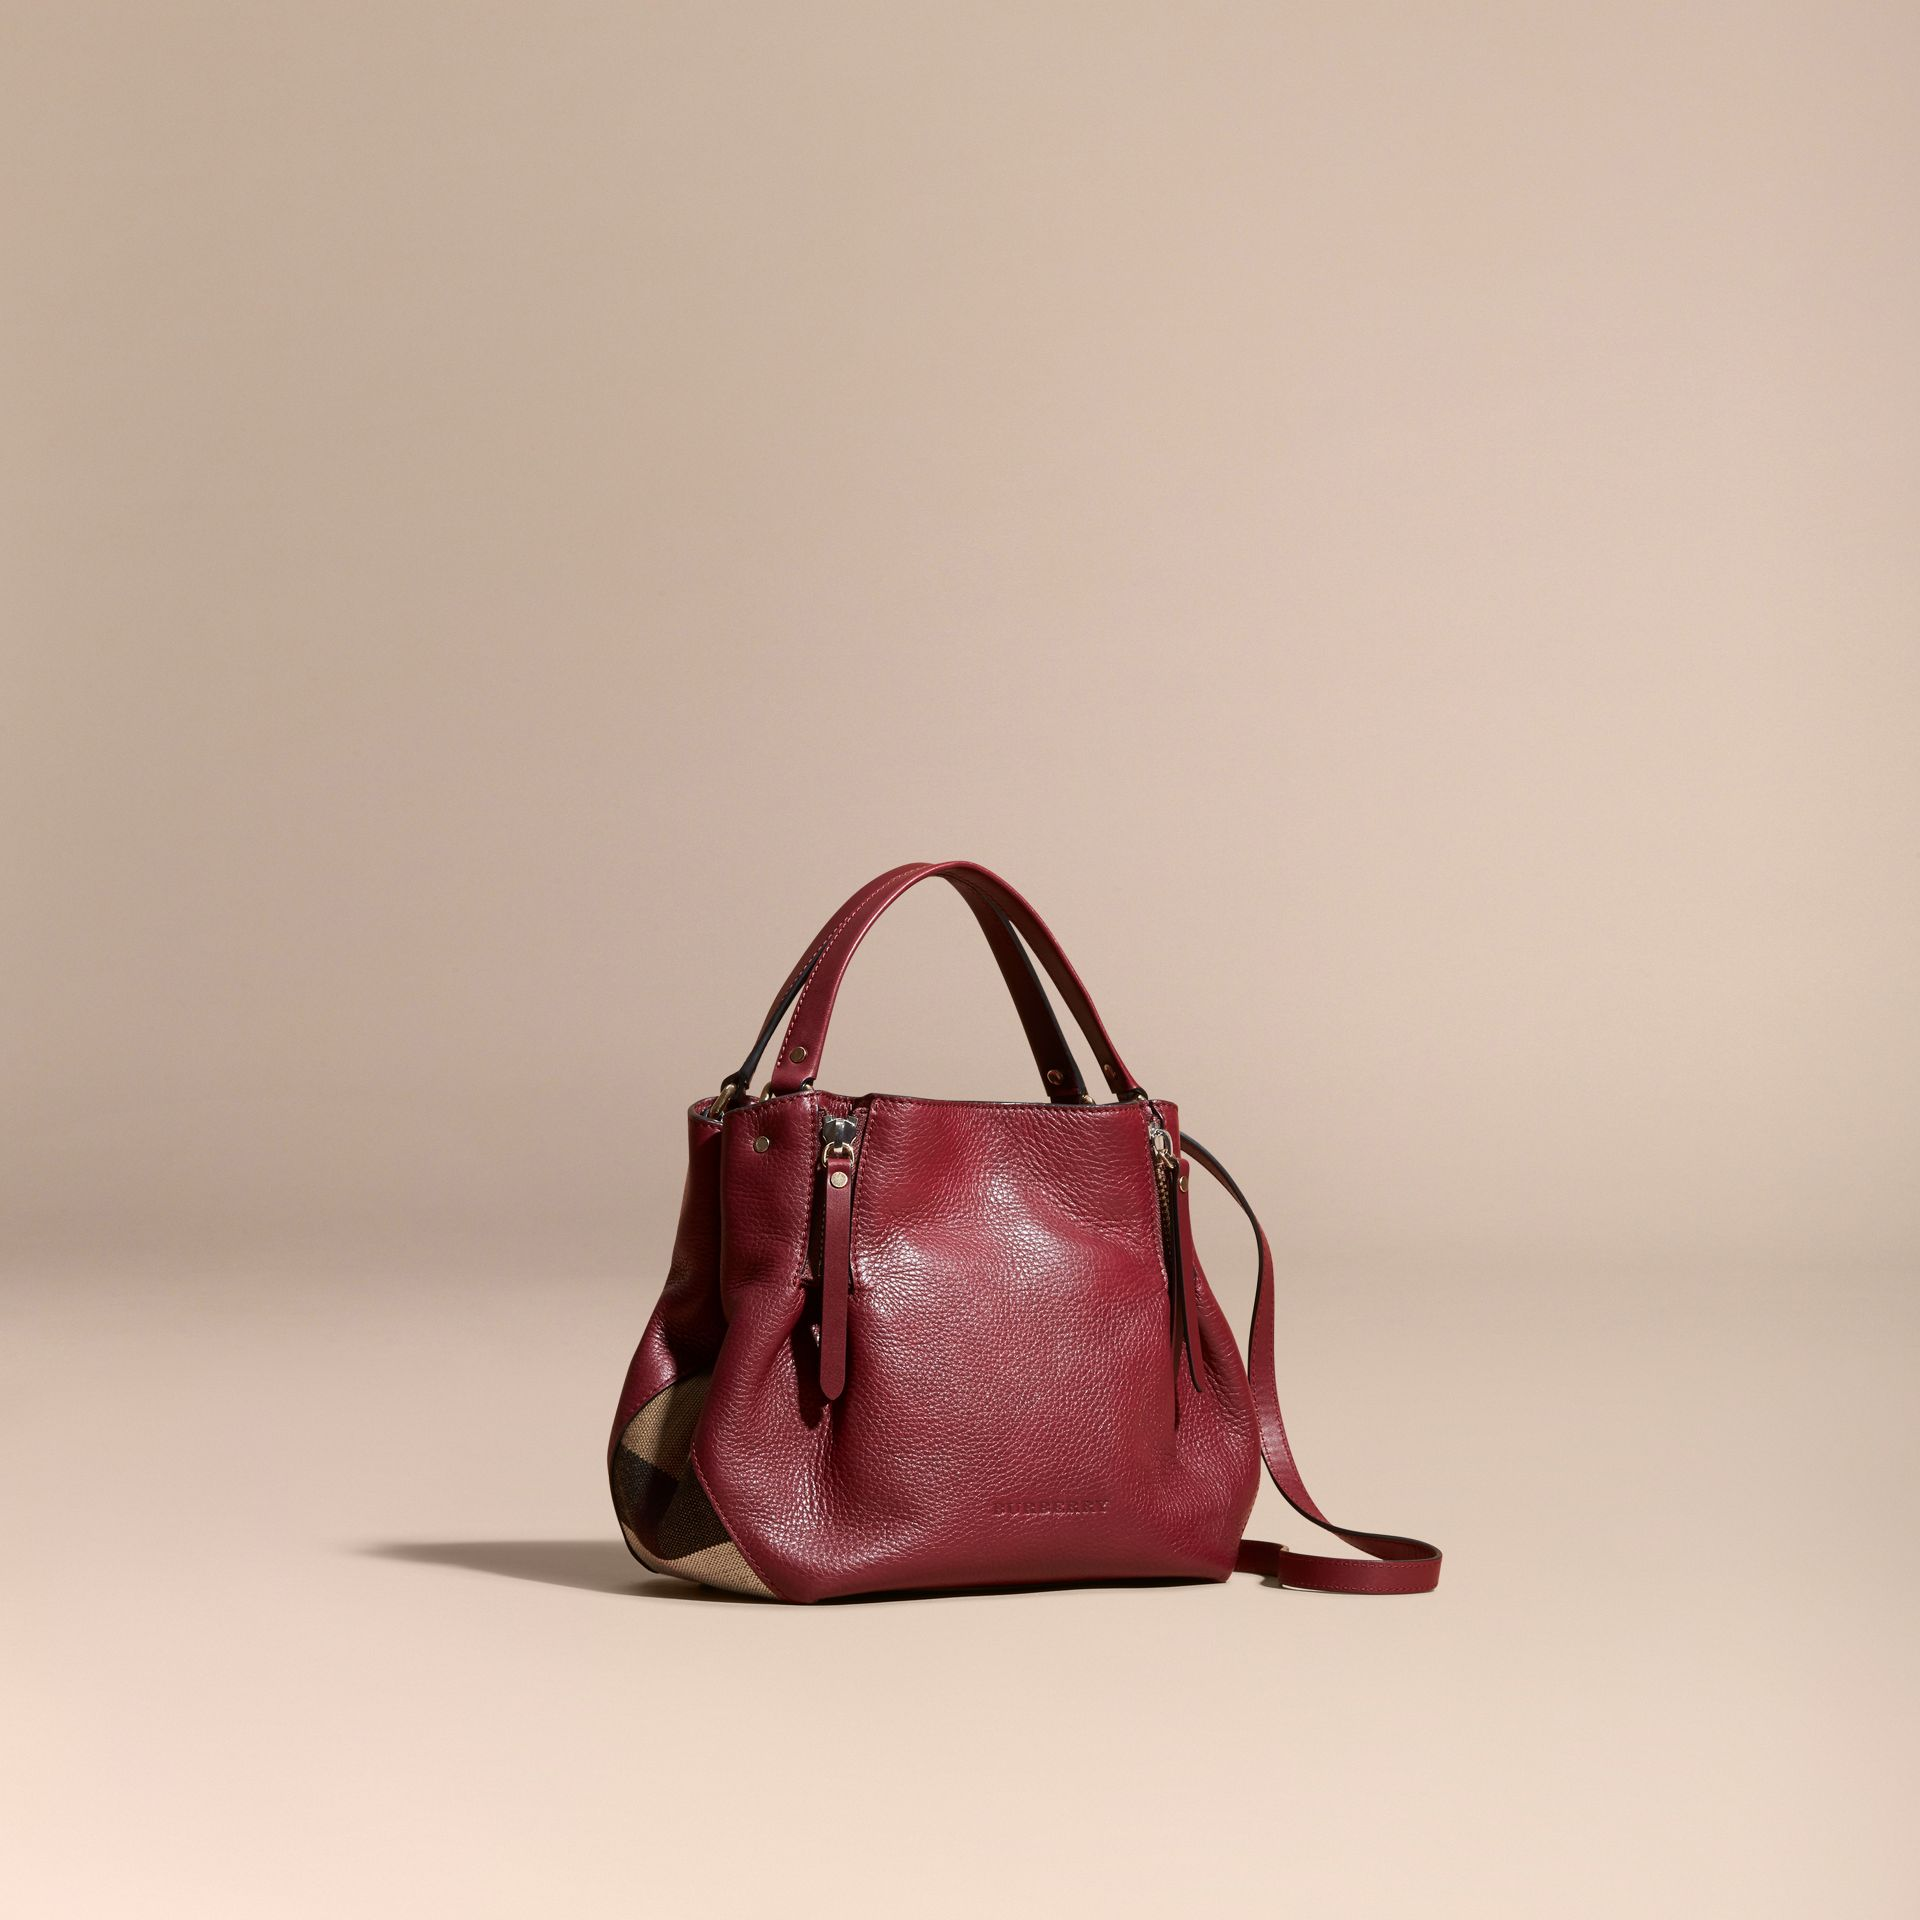 Burgundy red Small Check Detail Leather Tote Bag - gallery image 1